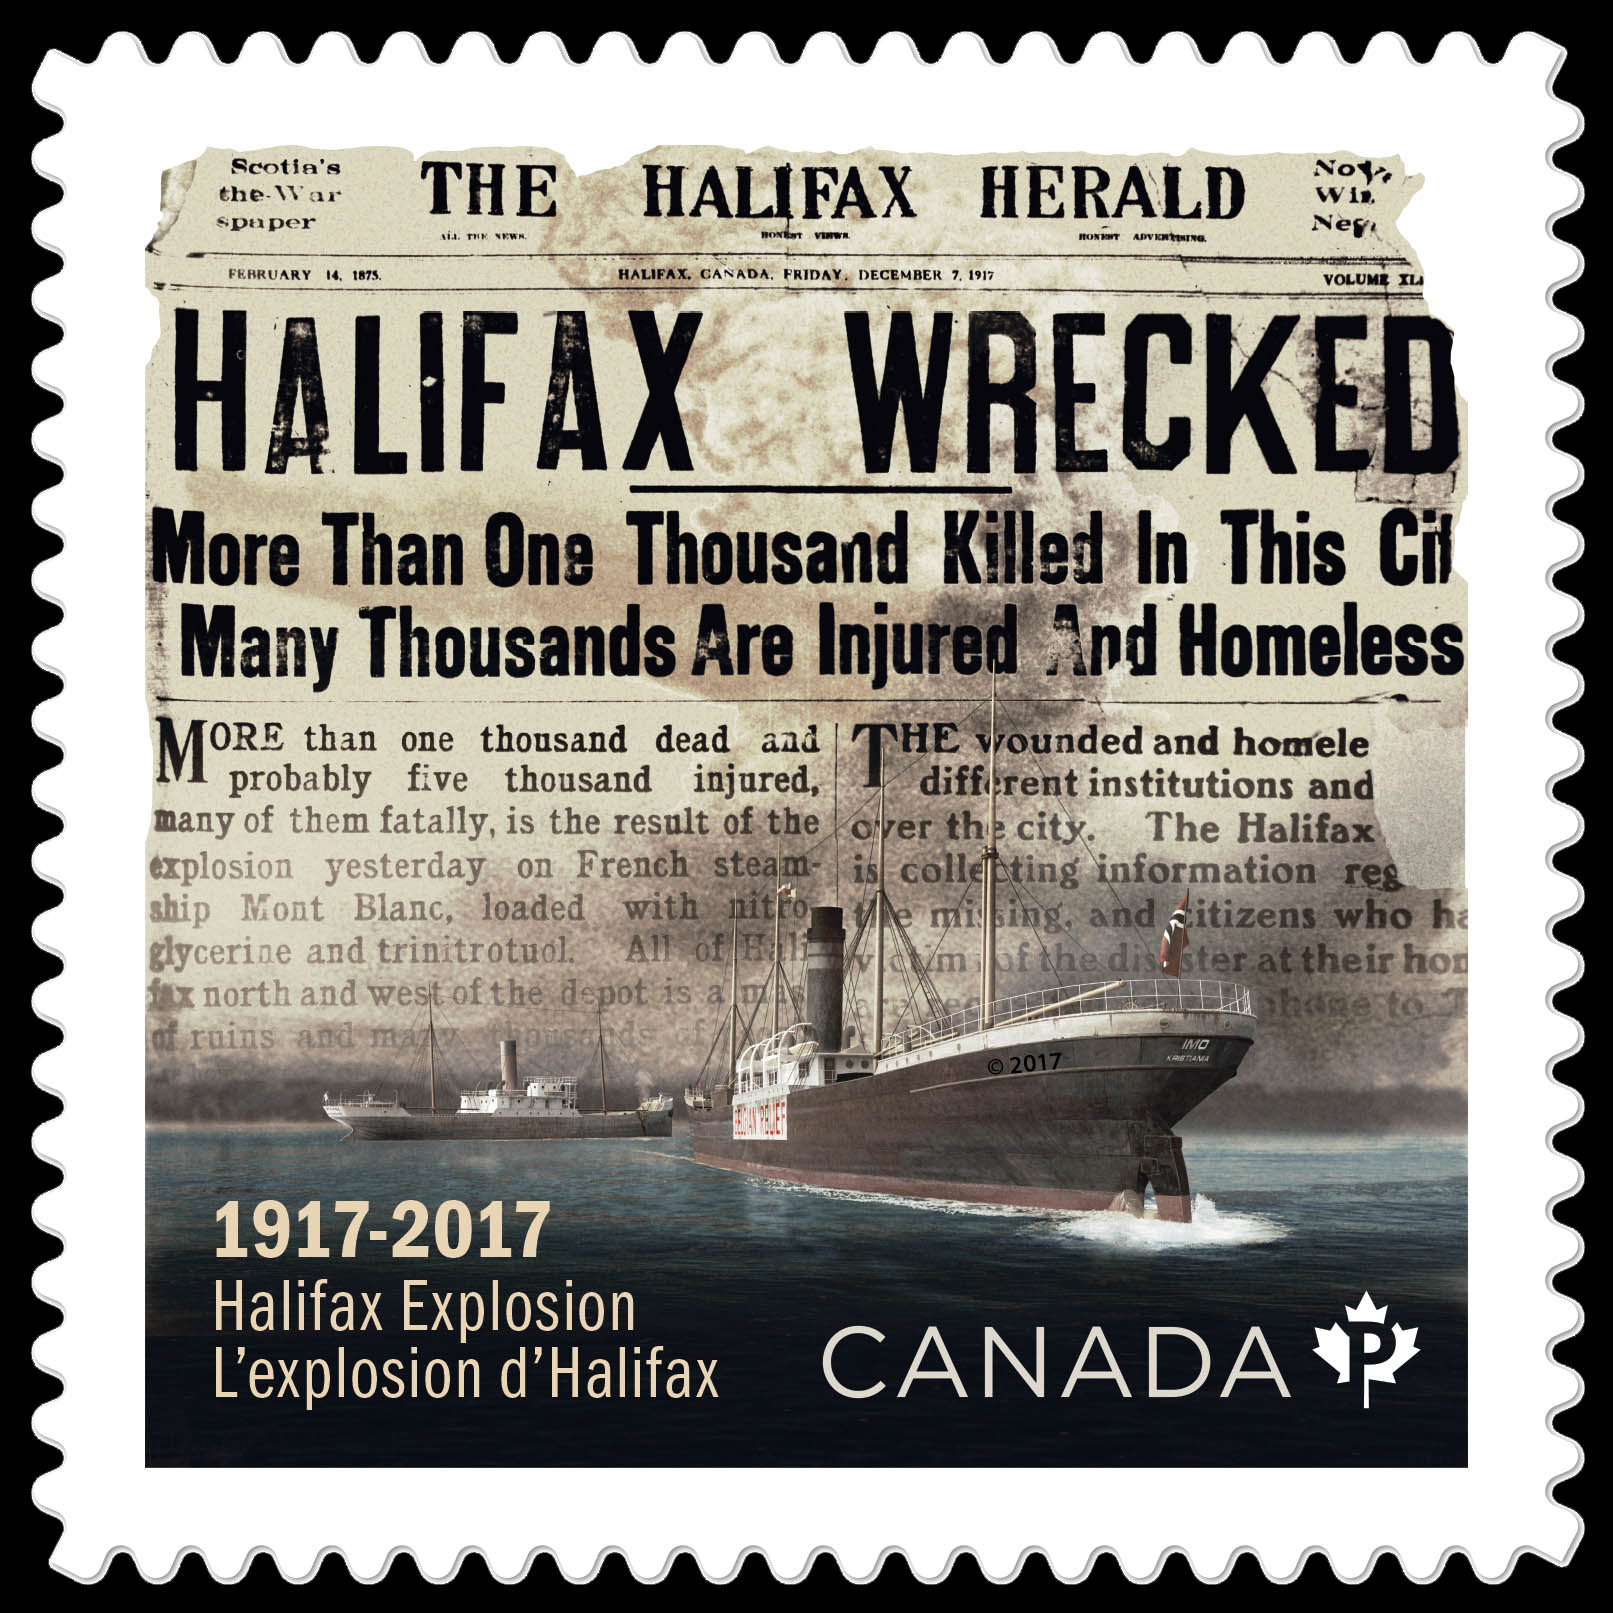 halifax explosion A brief background on the halifax explosion: the disaster occurred at 9:04:35 am on the morning of thursday, december 6, 1917 it was the result of an unlikely collision in the narrows of halifax harbour, involving the french ship, mont blanc - loaded with tons of wet and dry picric acid, tnt, gun cotton and benzol - and the belgian relief vessel, imo, under norwegian registry.